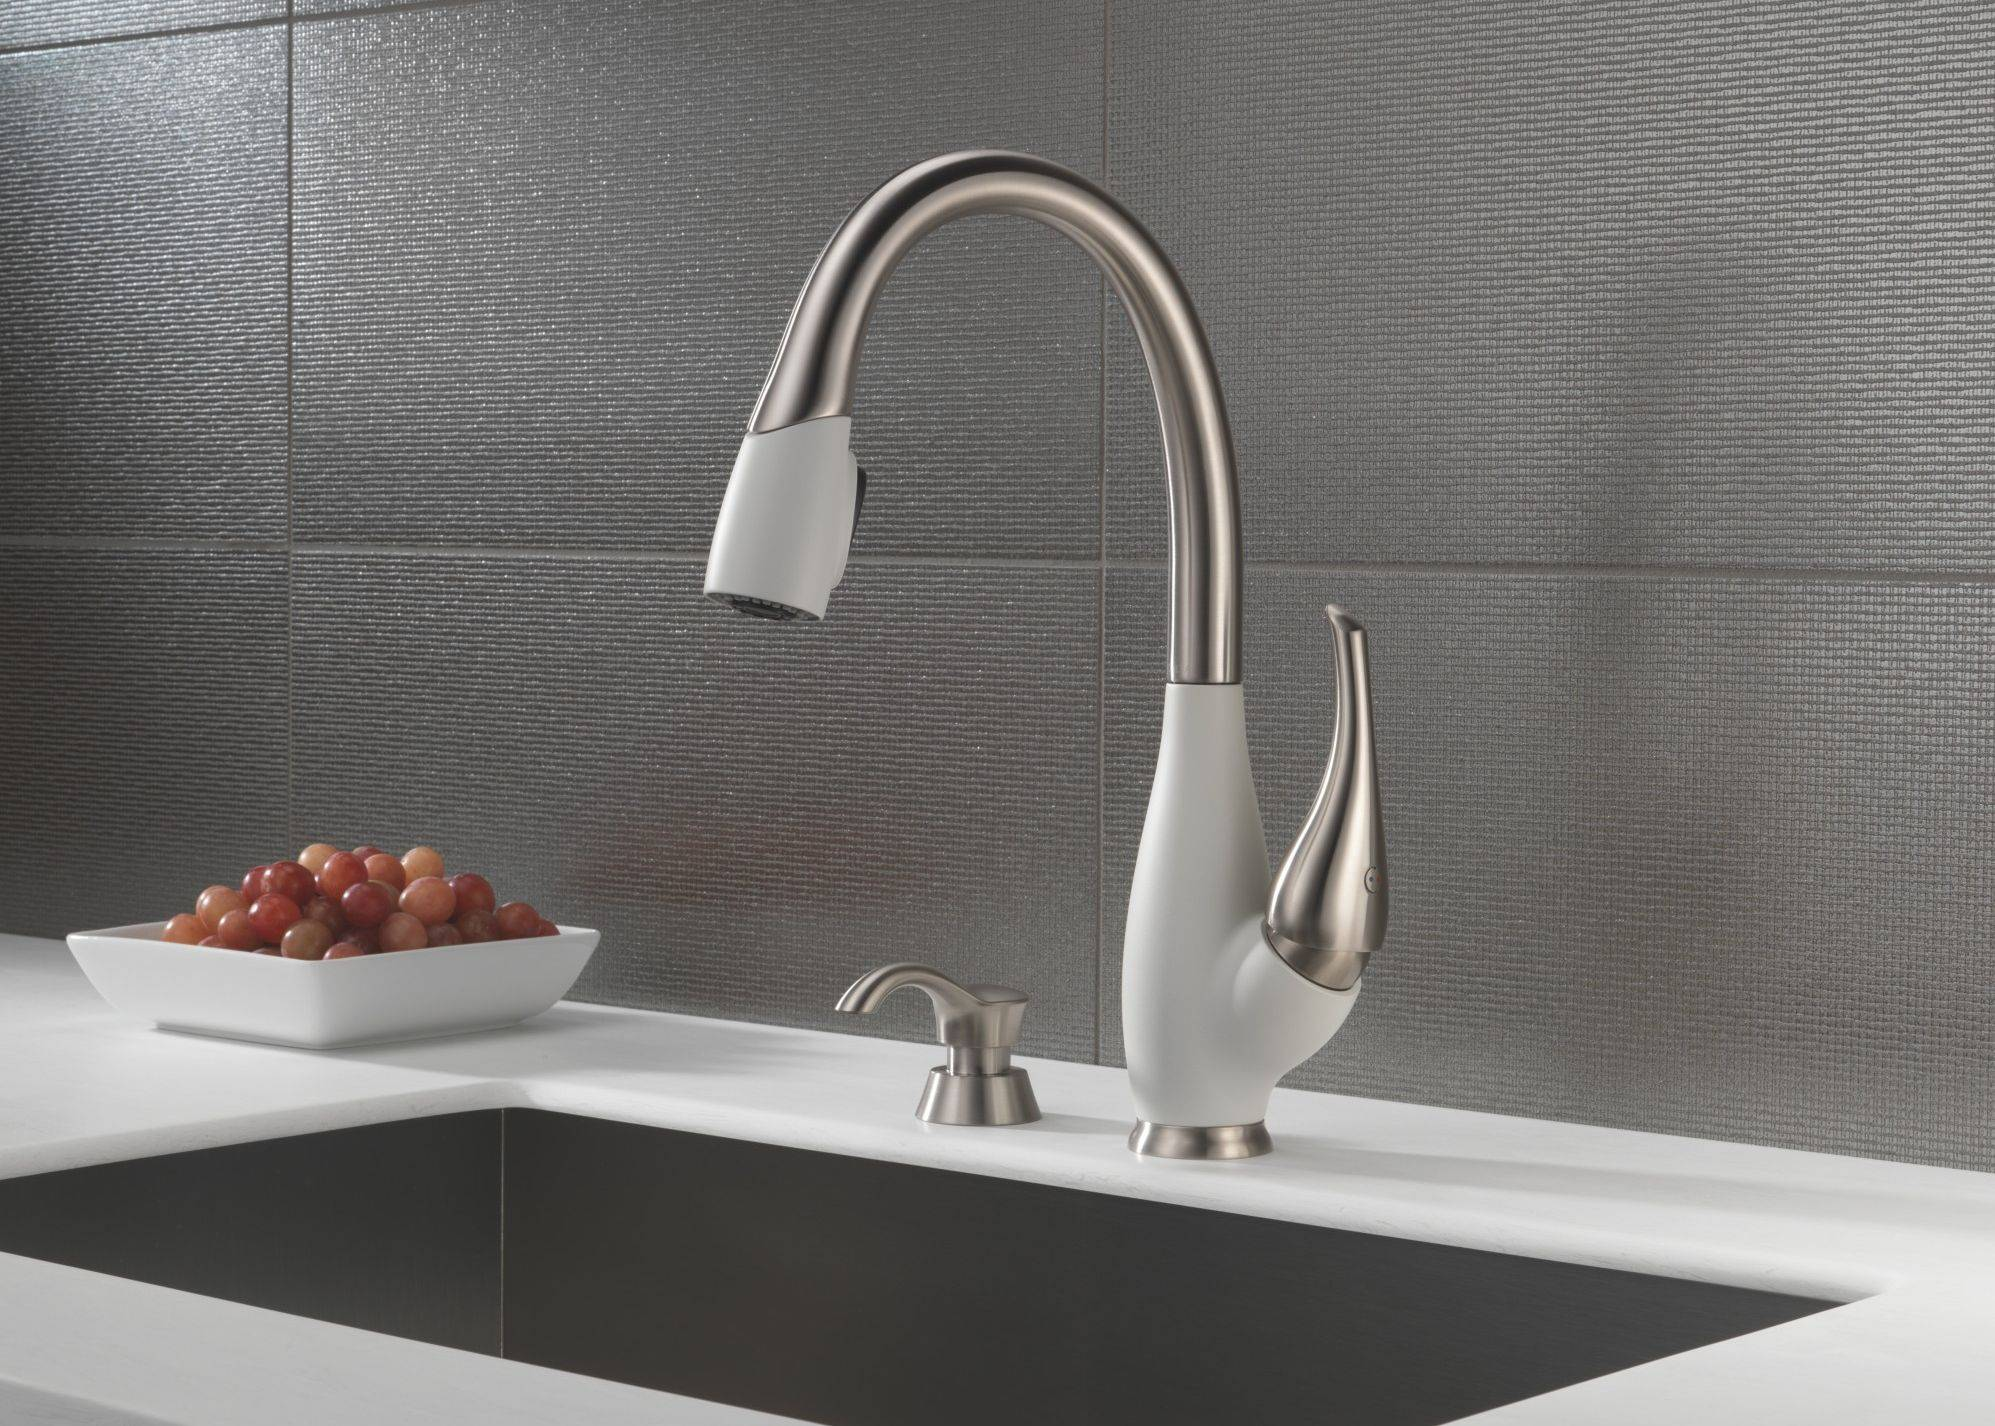 Delta's Fuse adds red, black or white to your kitchen faucet. The fuse is another faucet that offers multiple uses in the kitchen.